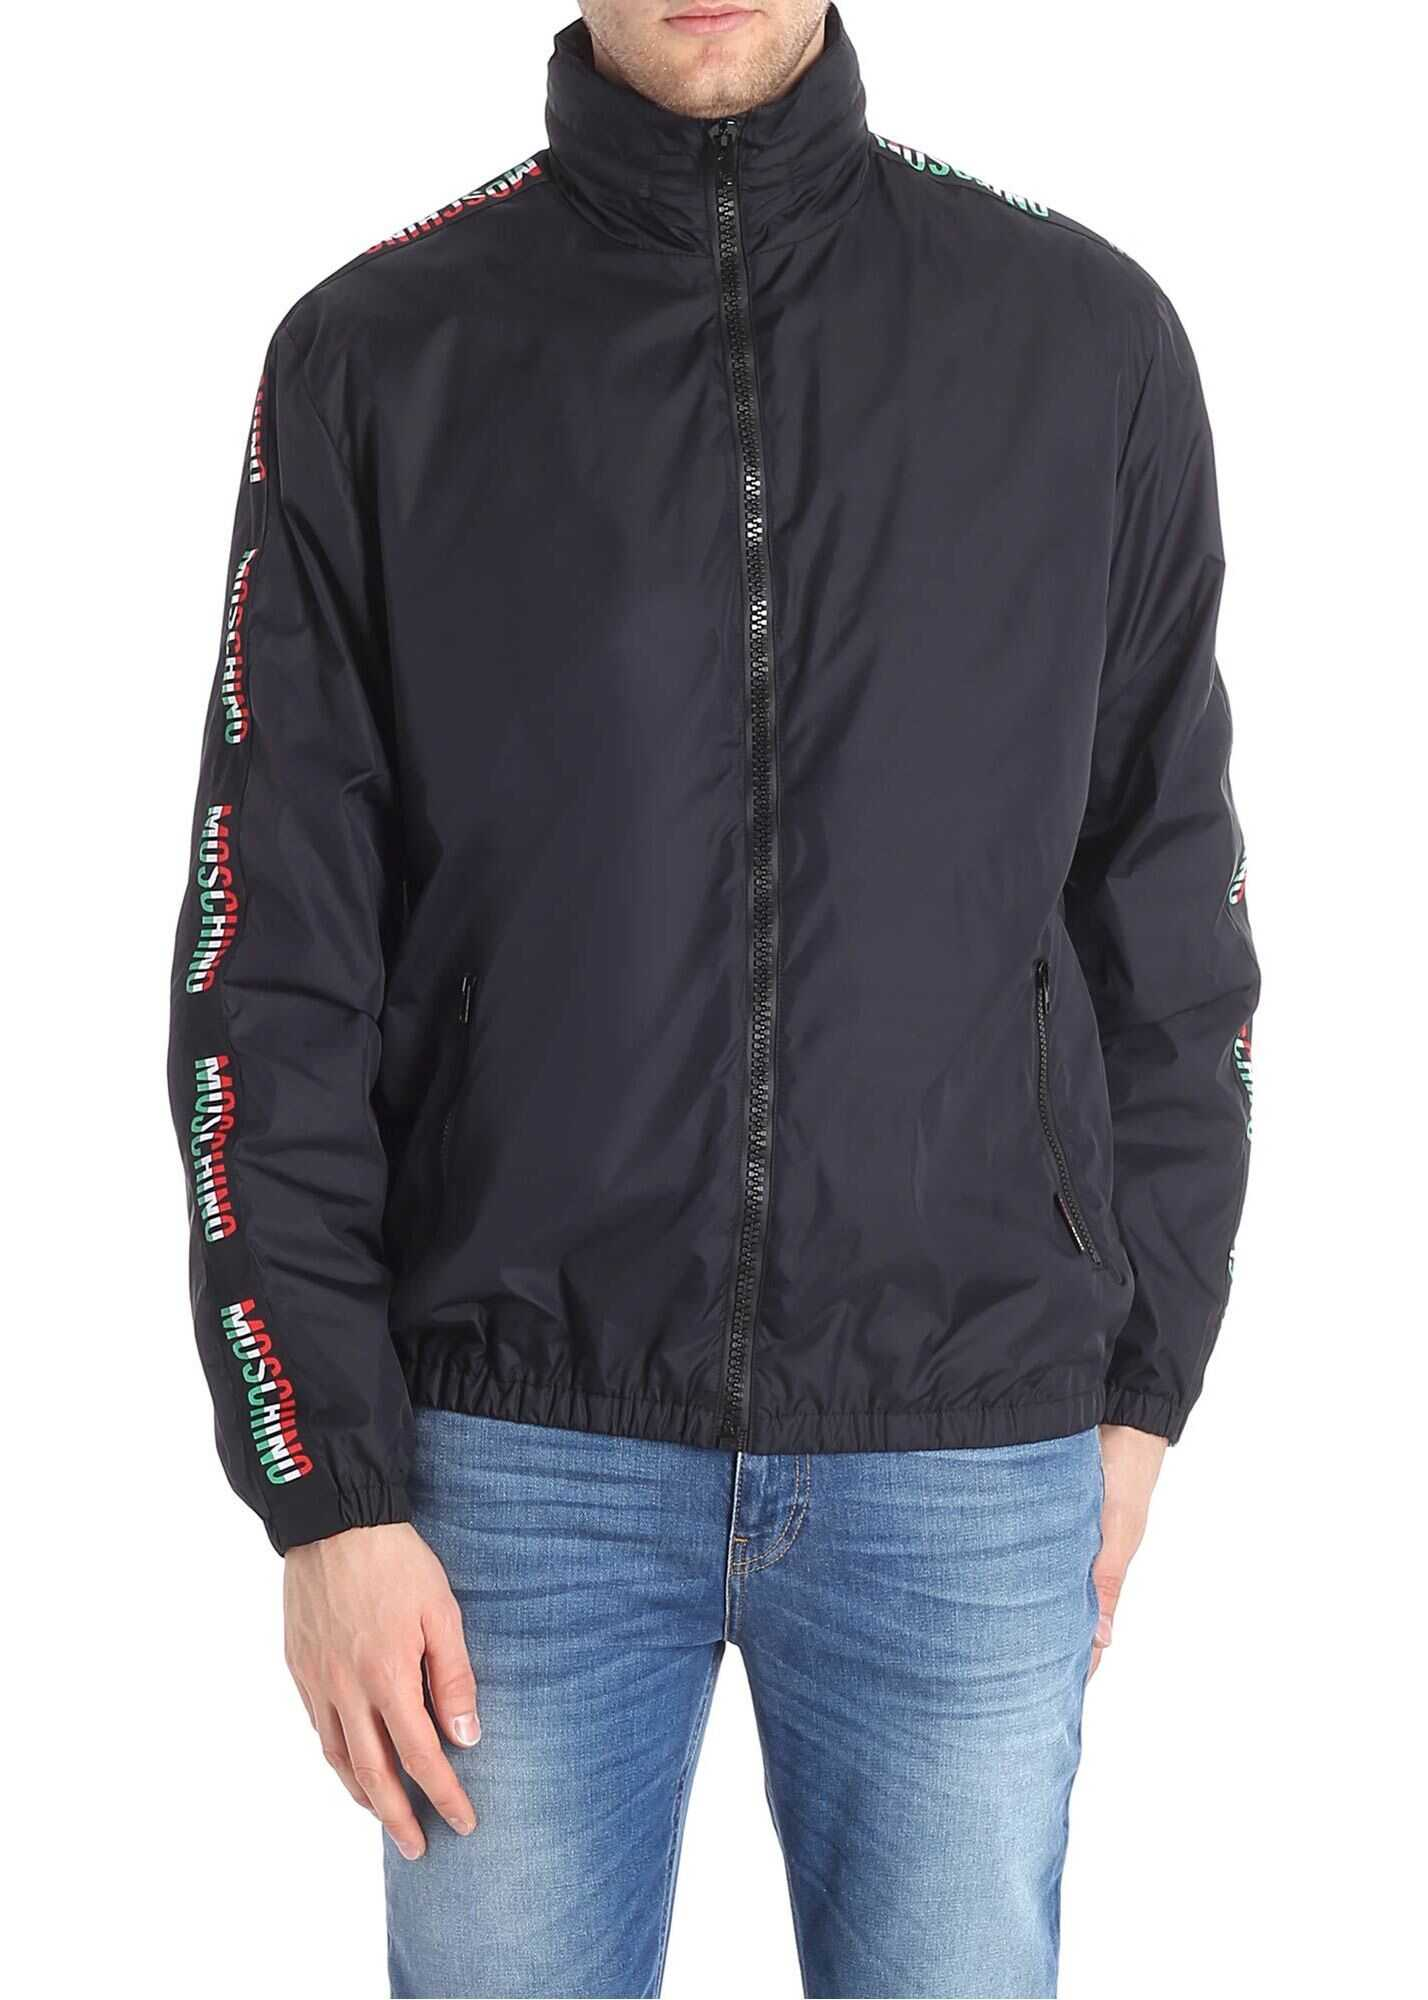 Moschino Black Padded Jacket With Branded Sleeves Black